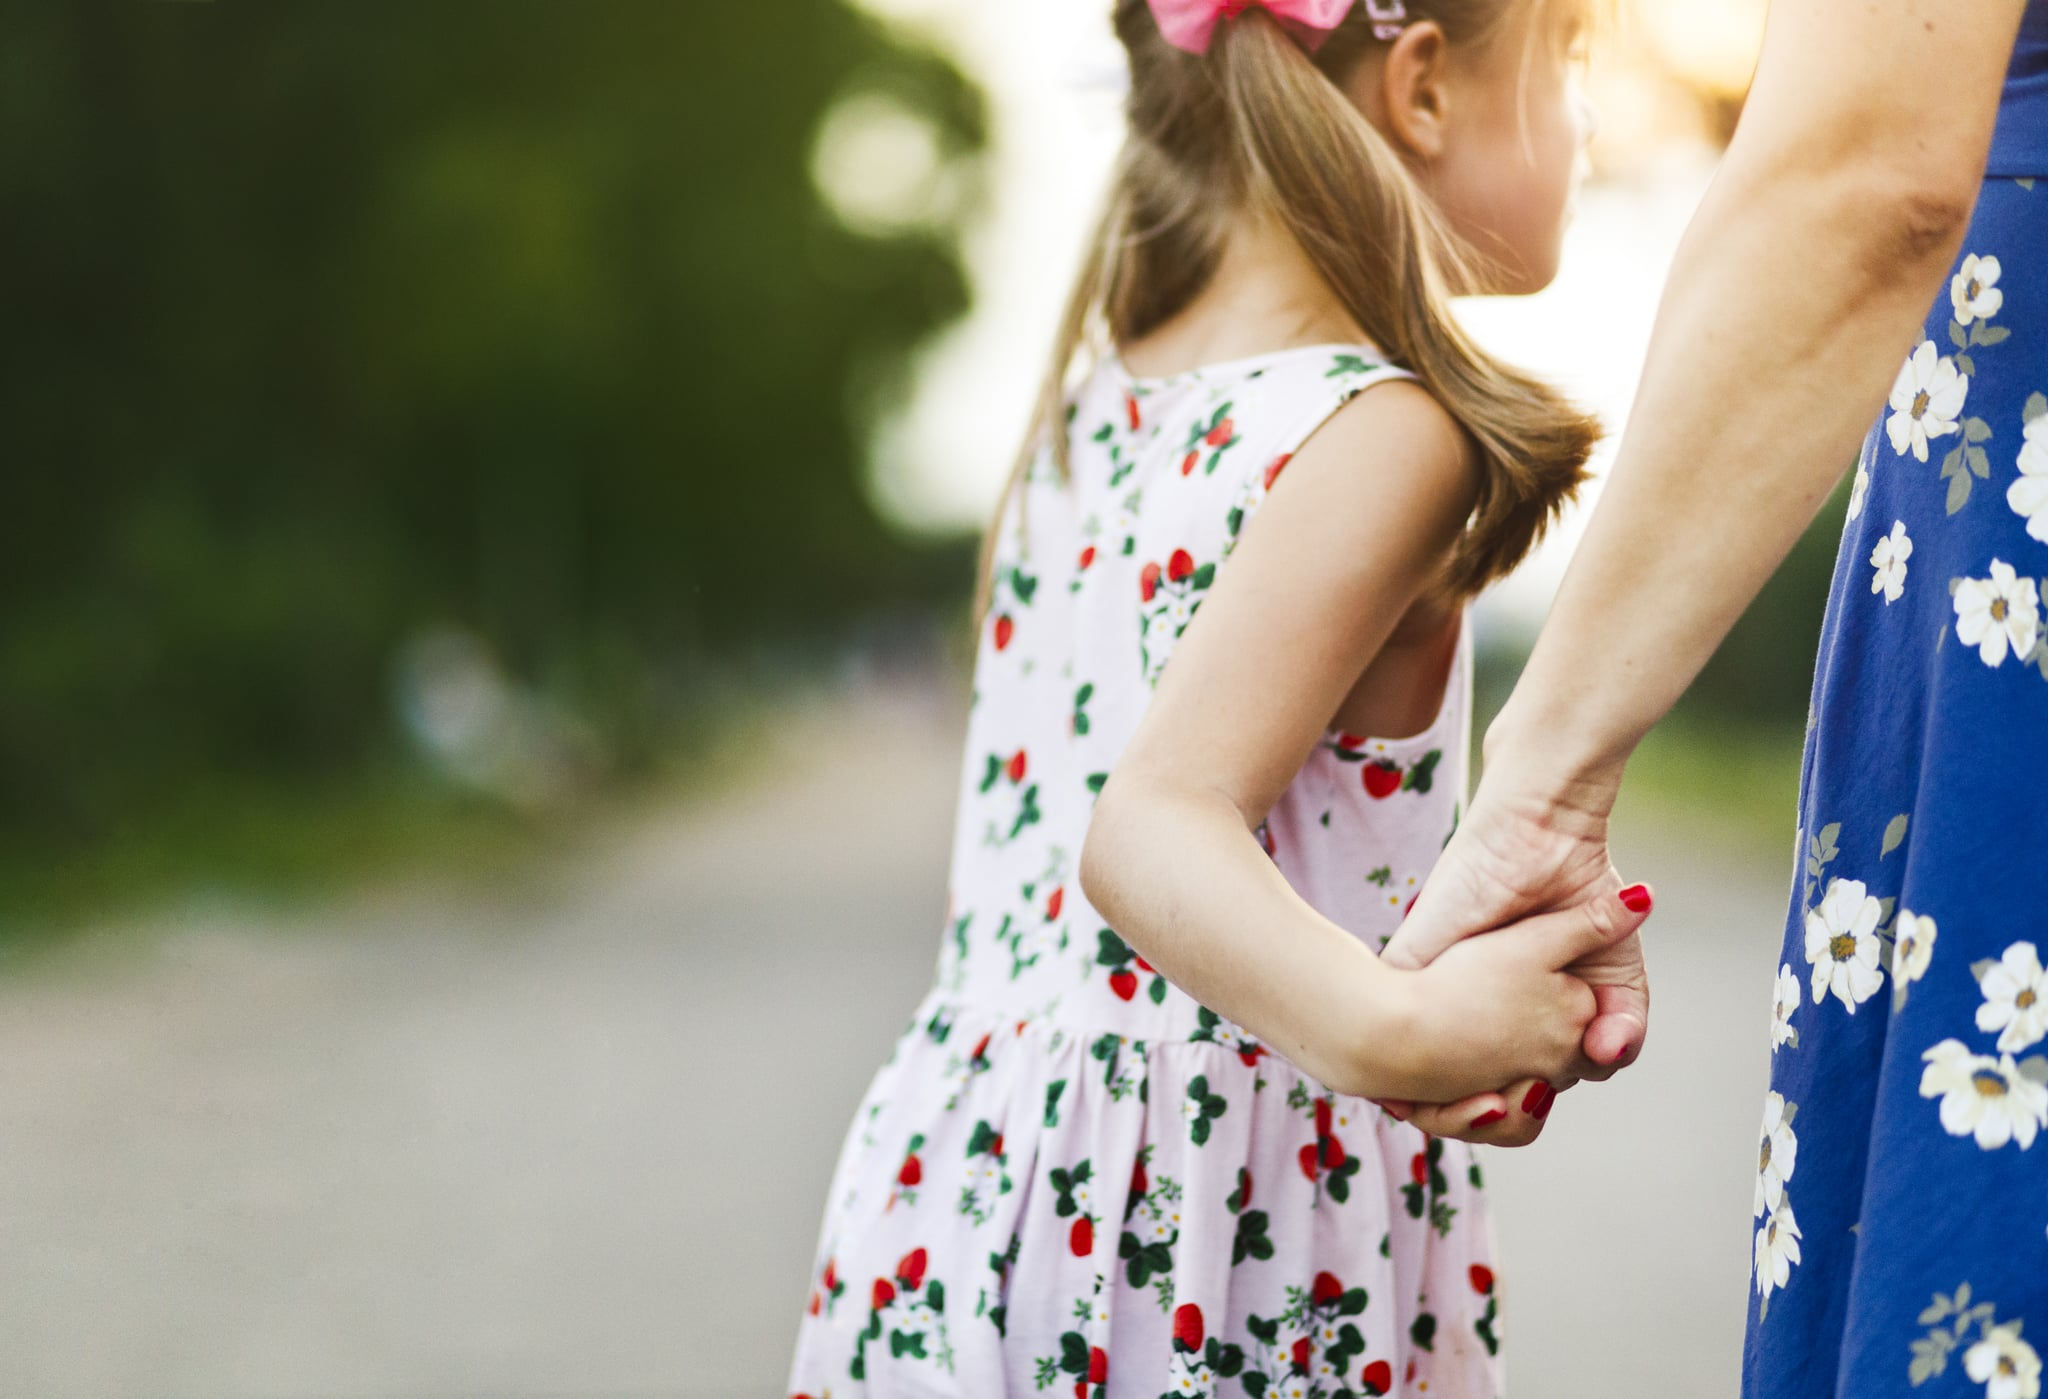 Mother and daughter are holding hands outdoors in summer.